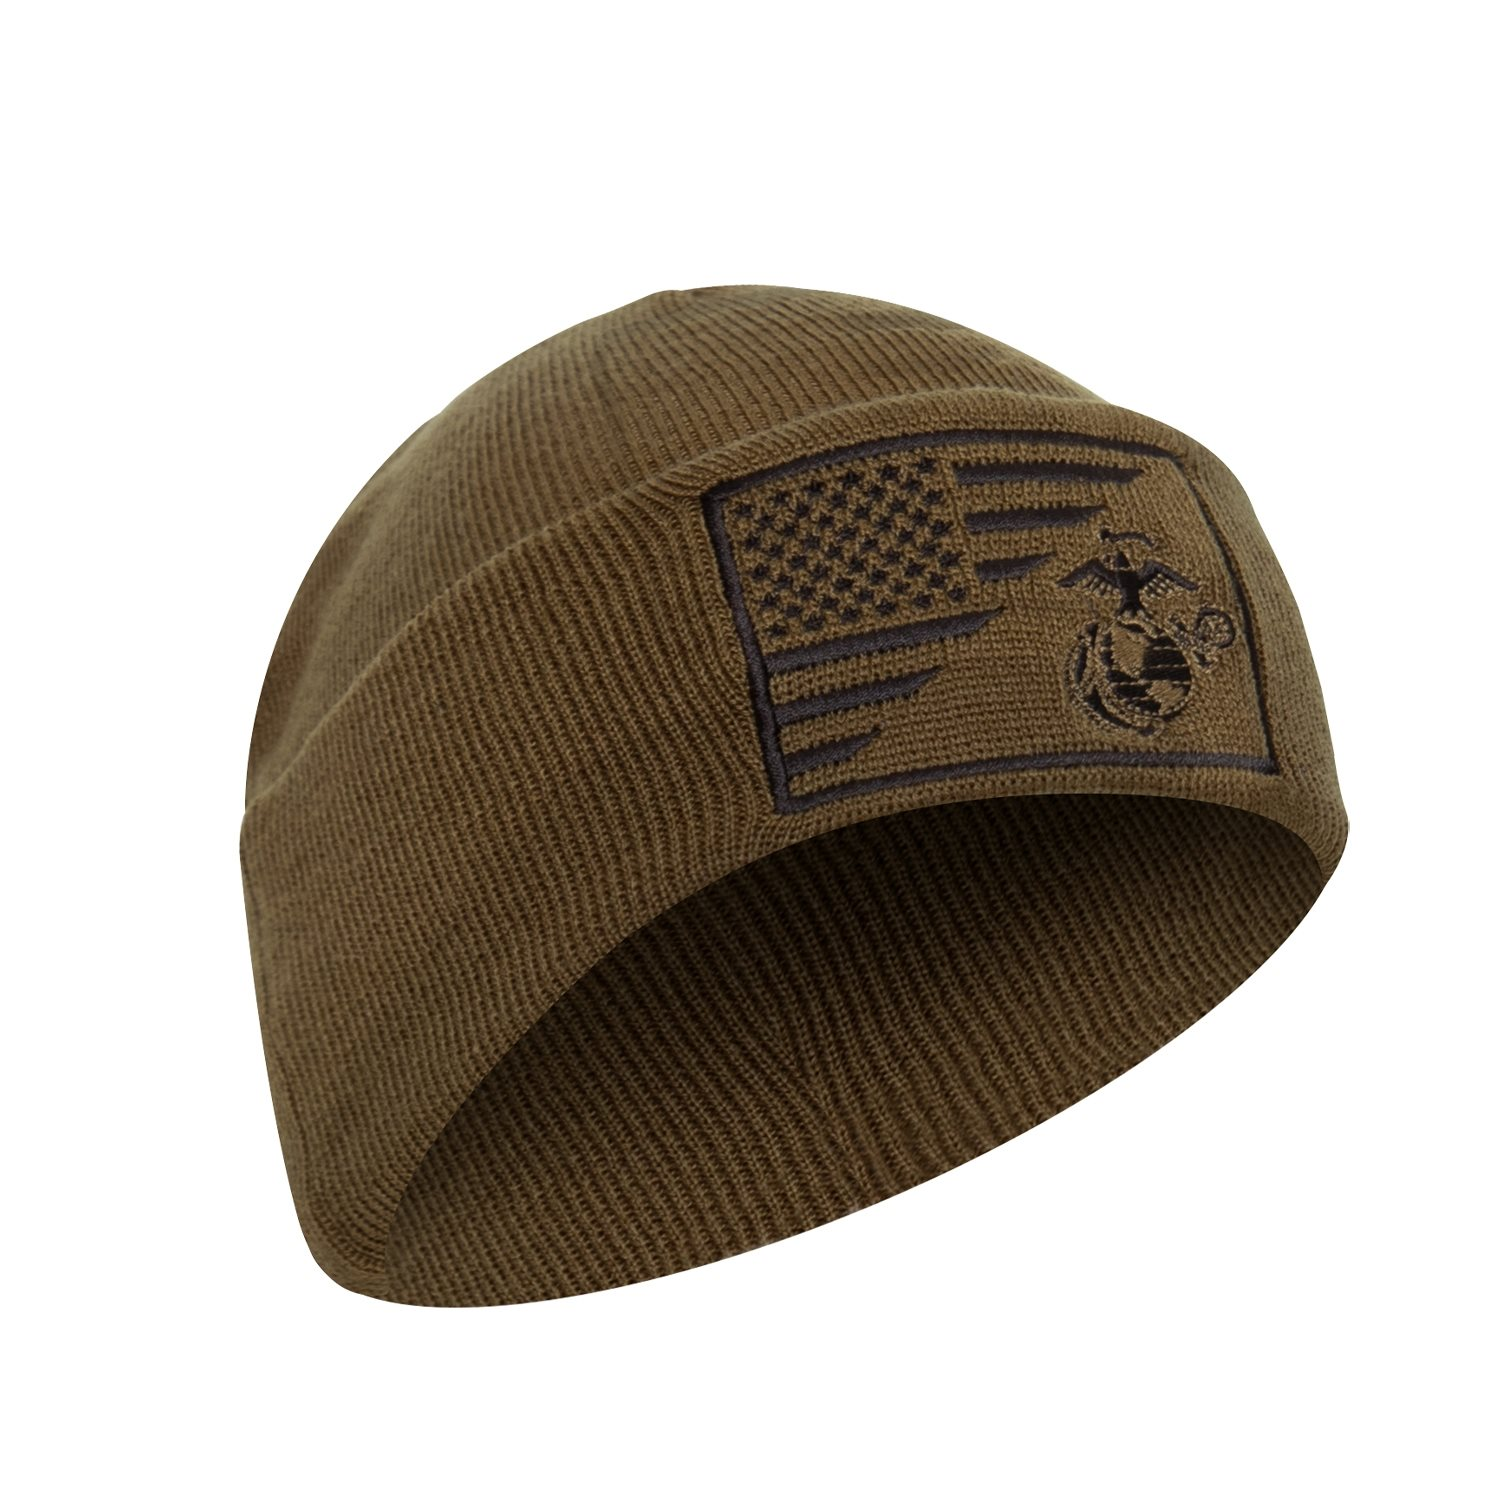 USMC/ US Flag Deluxe Fine Knit Watch Cap COYOTE ROTHCO 5428 L-11